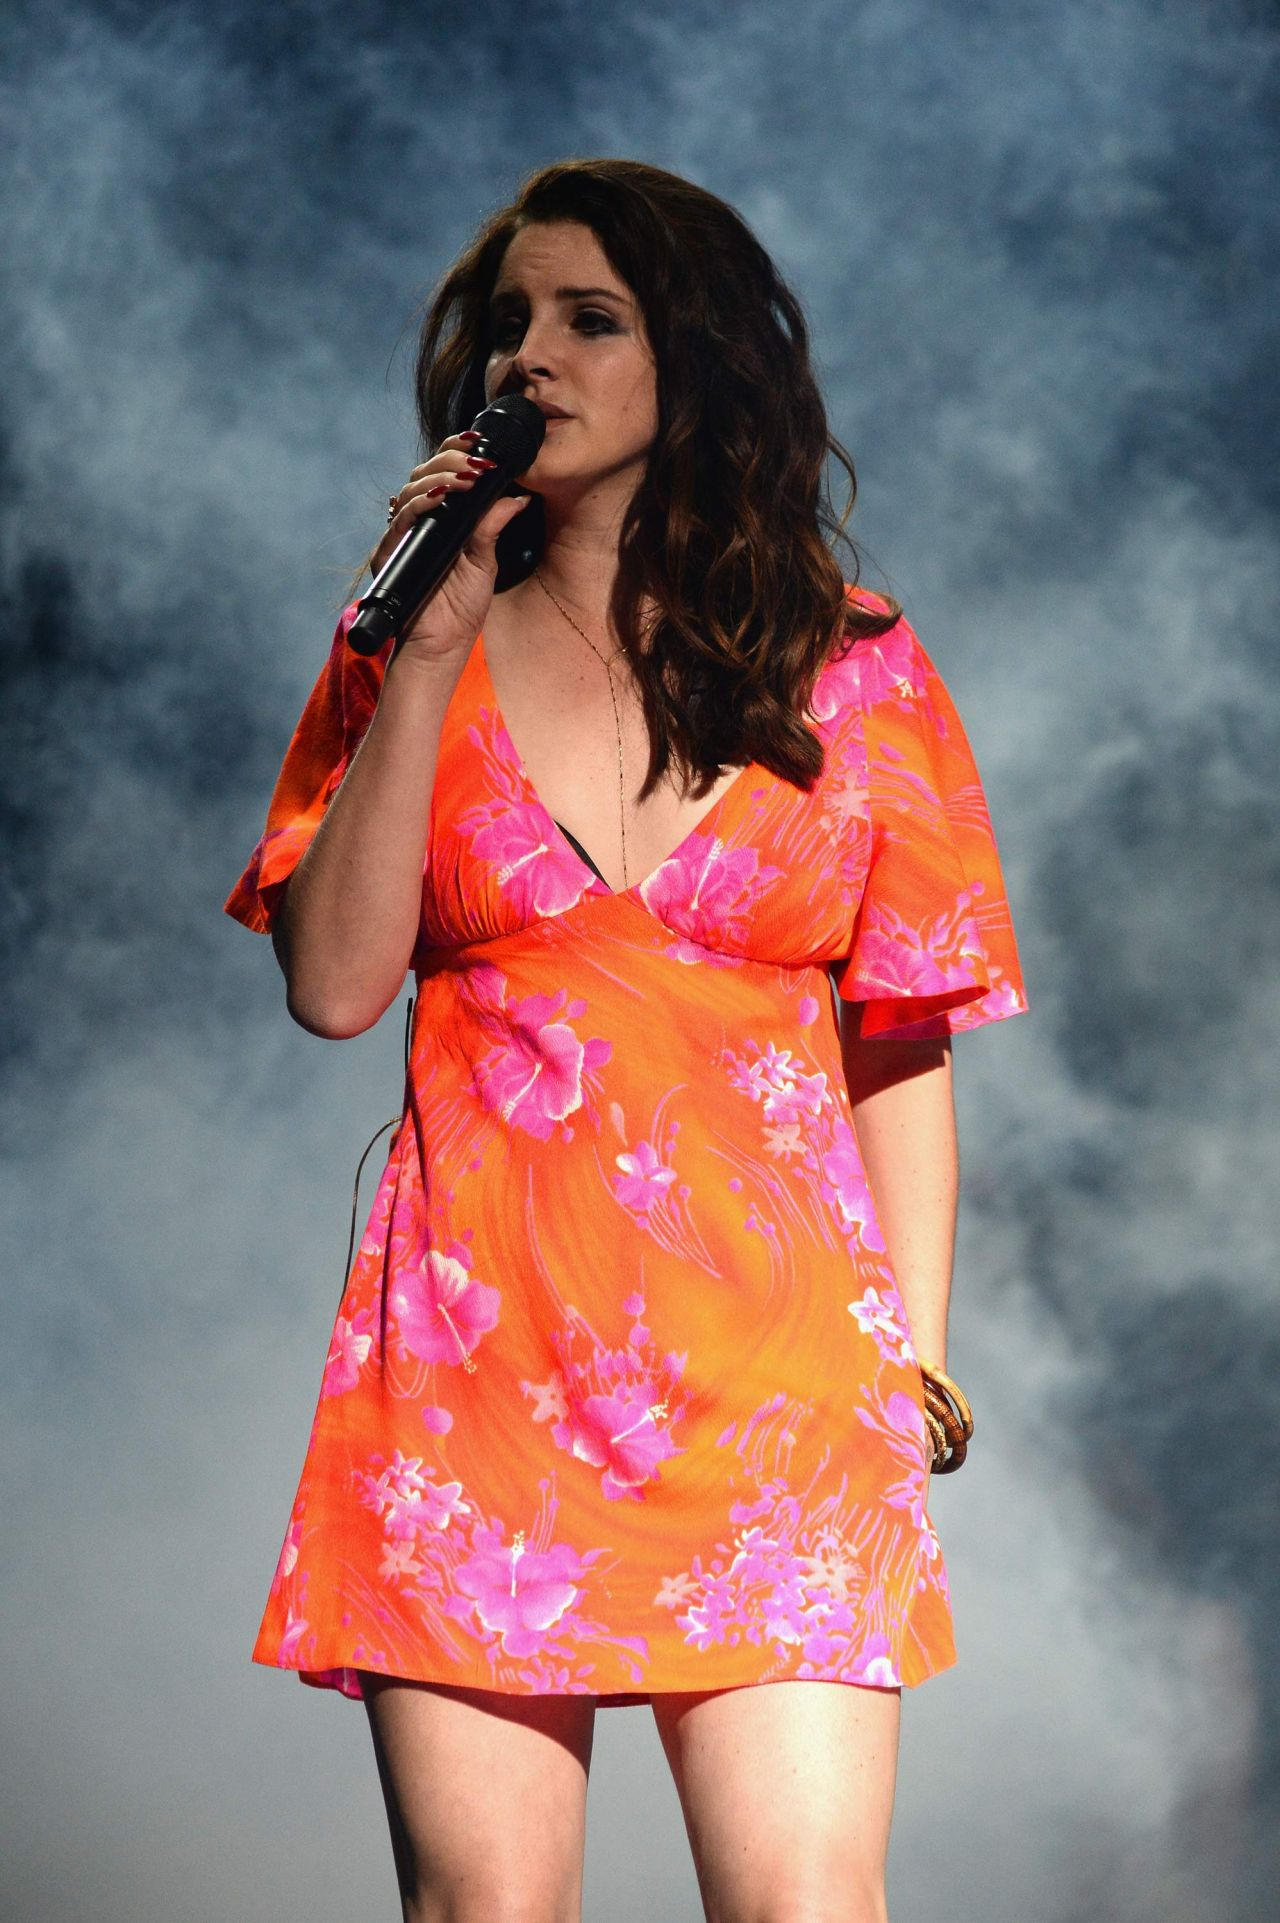 lana-del-rey-performs-at-2014-coachella-music-festival-day-3_1